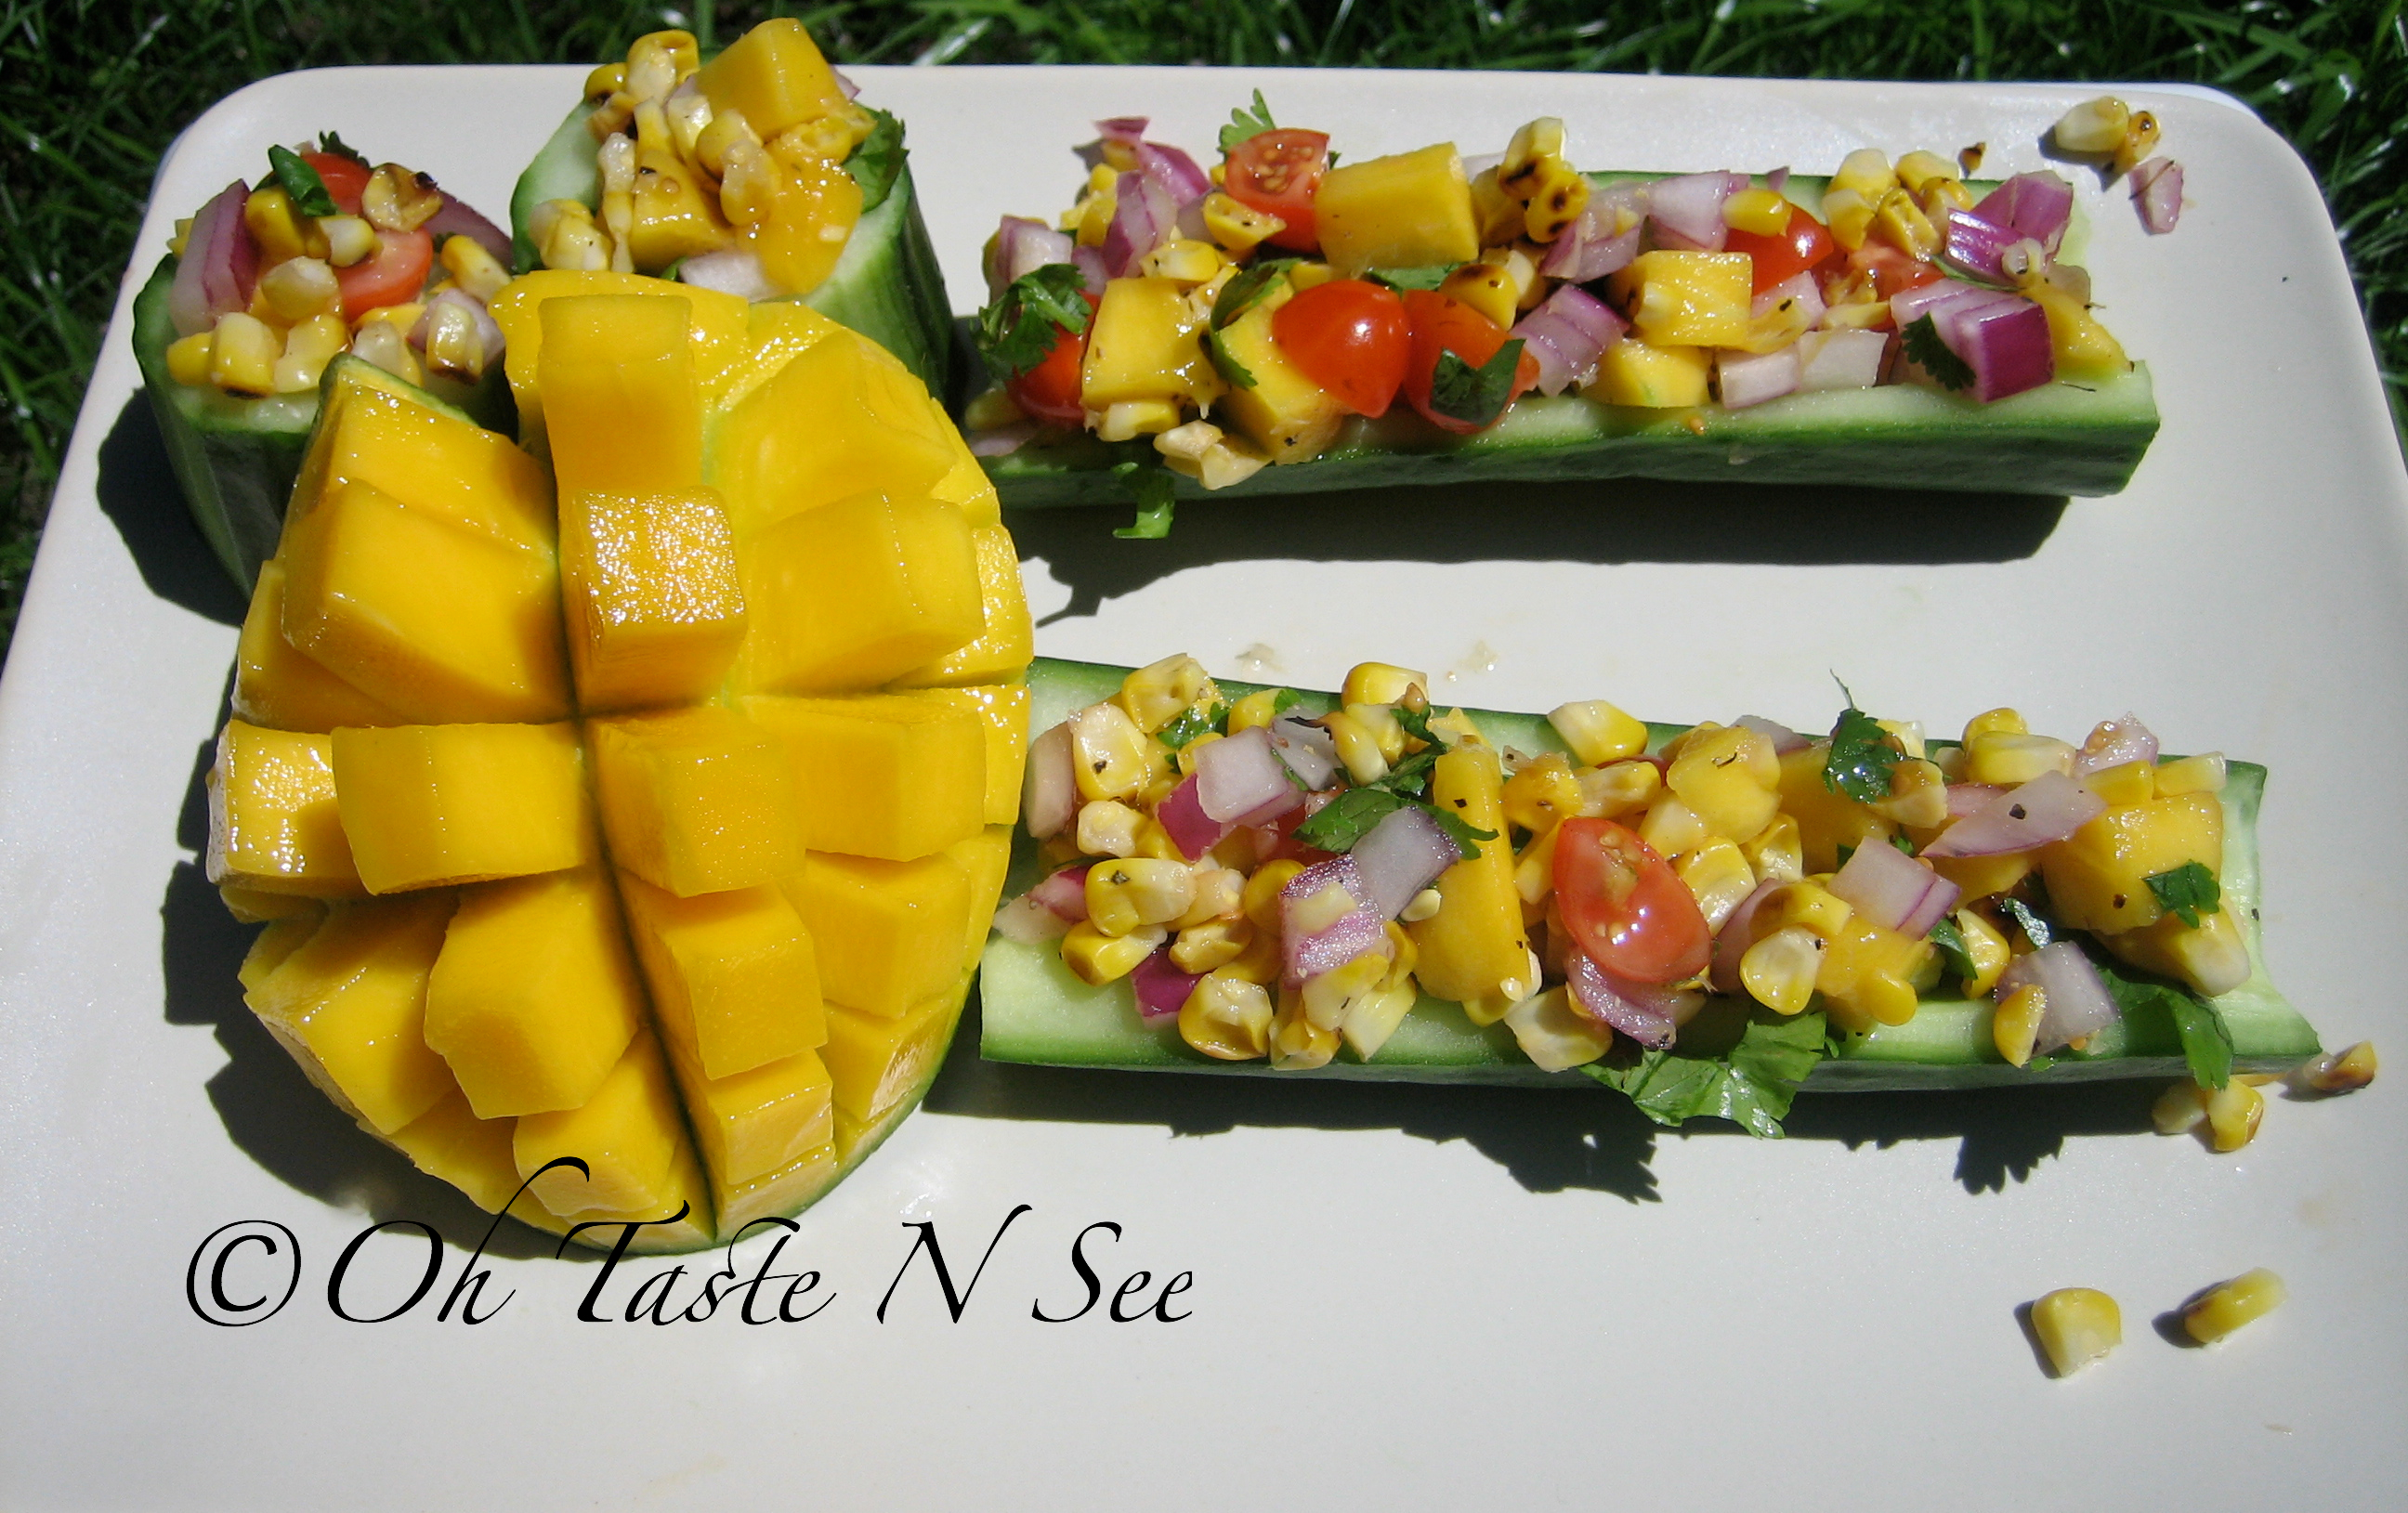 Grilled corn salad in cucumber boats/cups